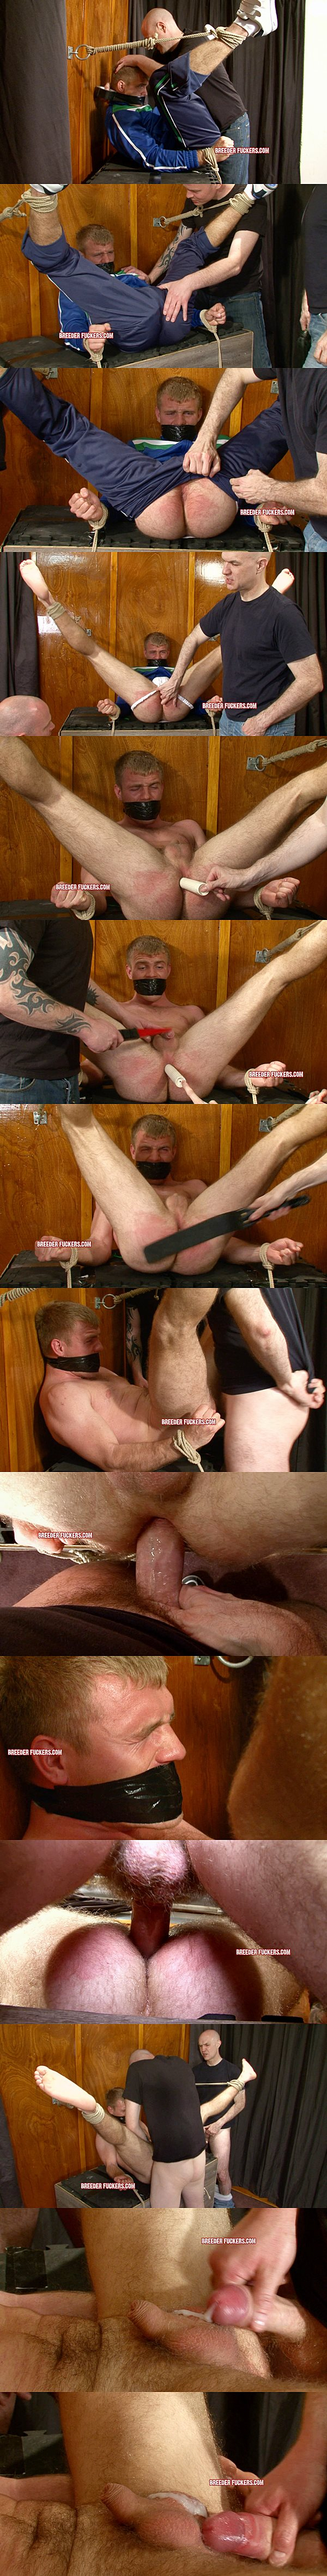 Hot athletic hetero fucker John gets dominated, humiliated & fucked with foot torment, spanking, ass fingering, electro shocks and dildo play at Breederfuckers 02